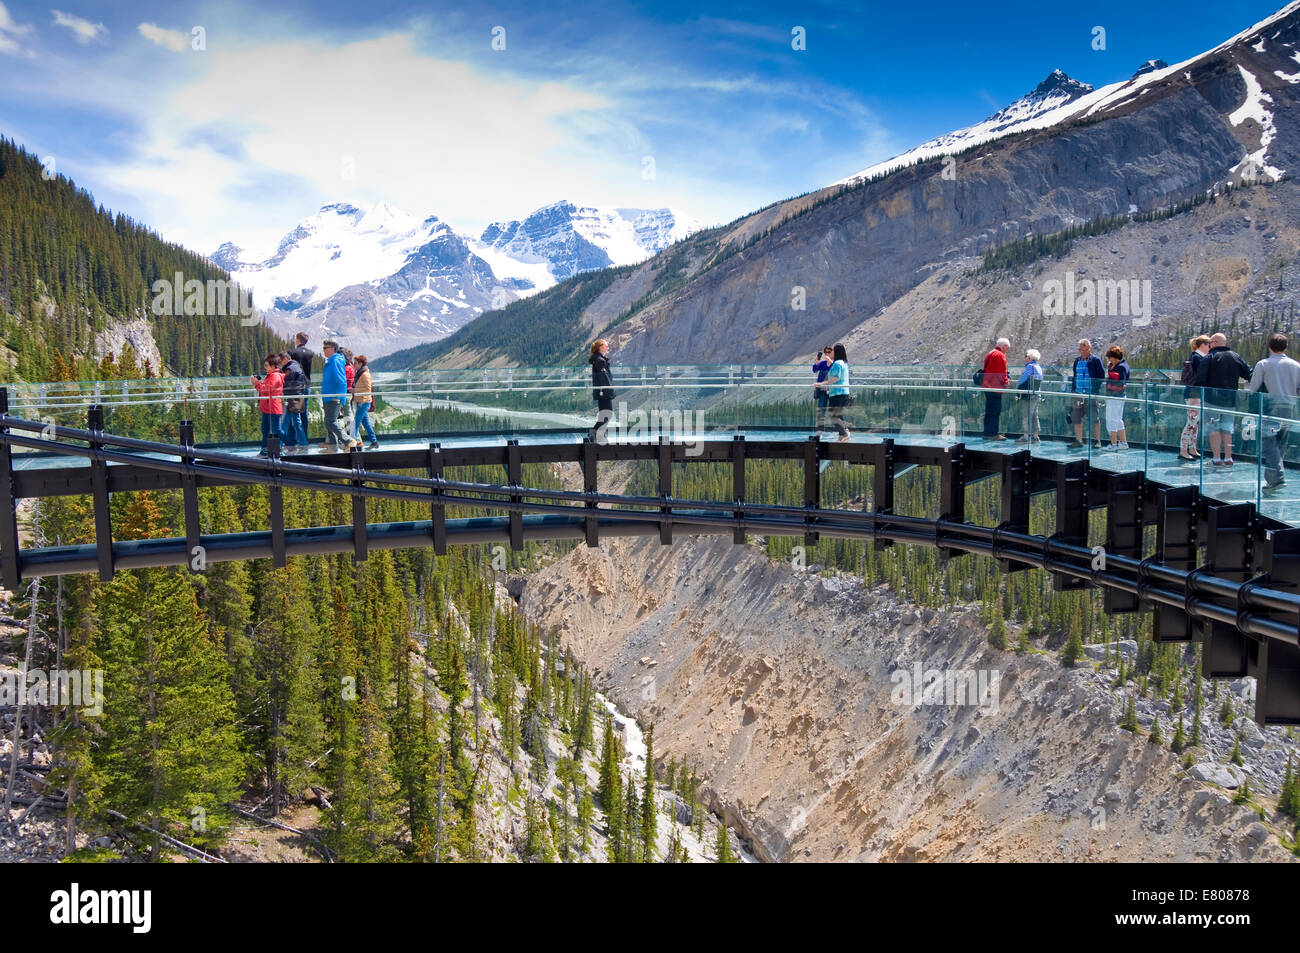 Glacier Skywalk, Jasper National Park, Alberta, Canada Photo Stock